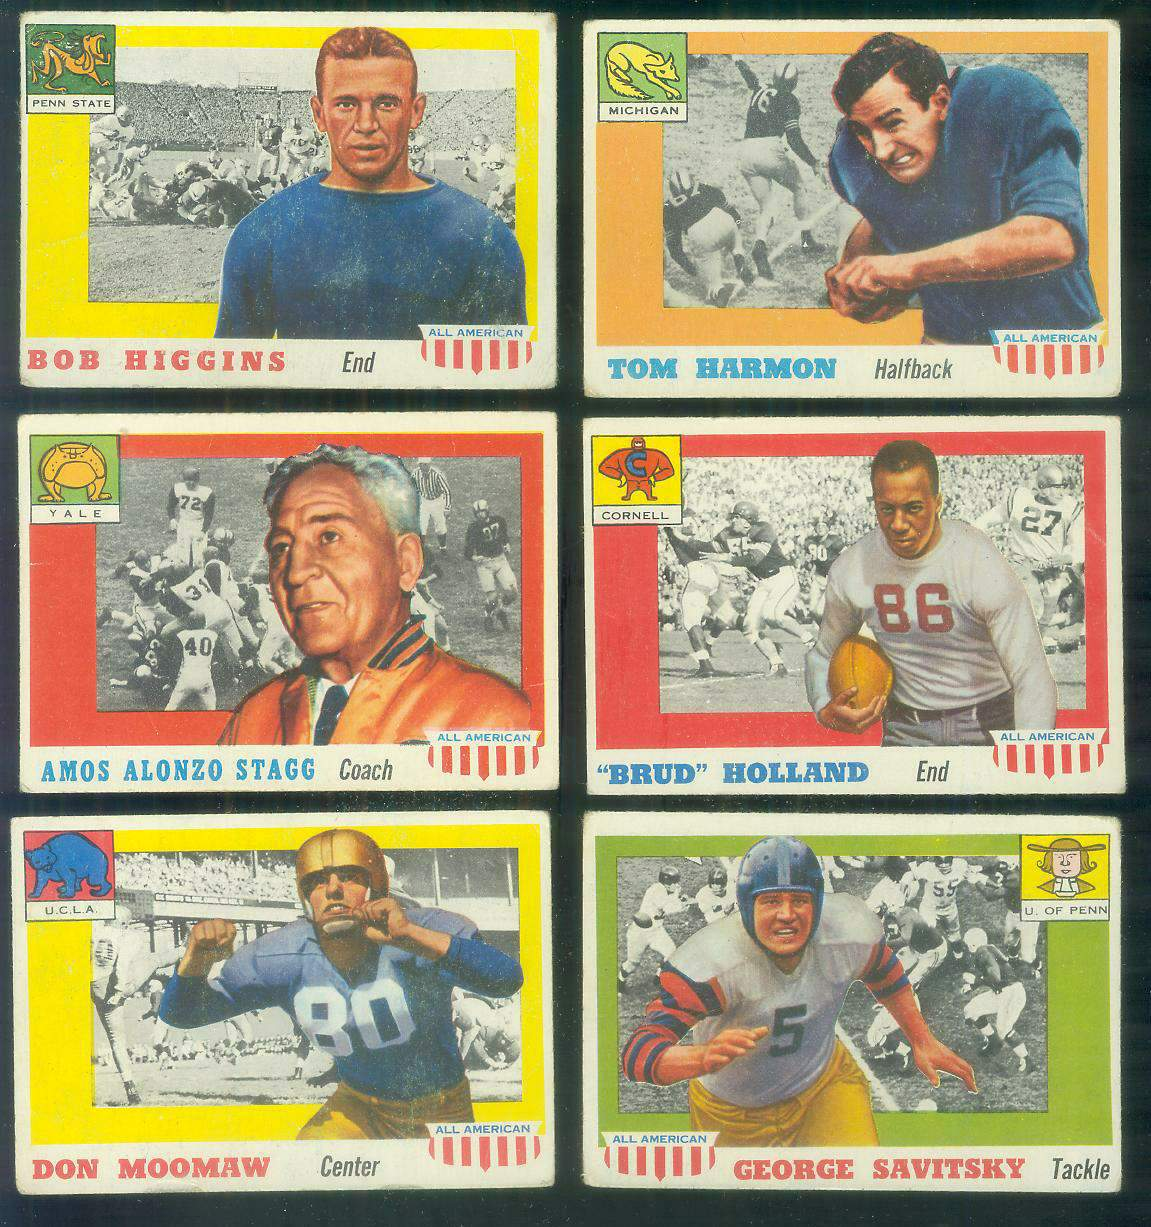 1955 Topps ALL-AMERICAN FB #.35 Tom Harmon ROOKIE SHORT PRINT (Michigan) Football cards value